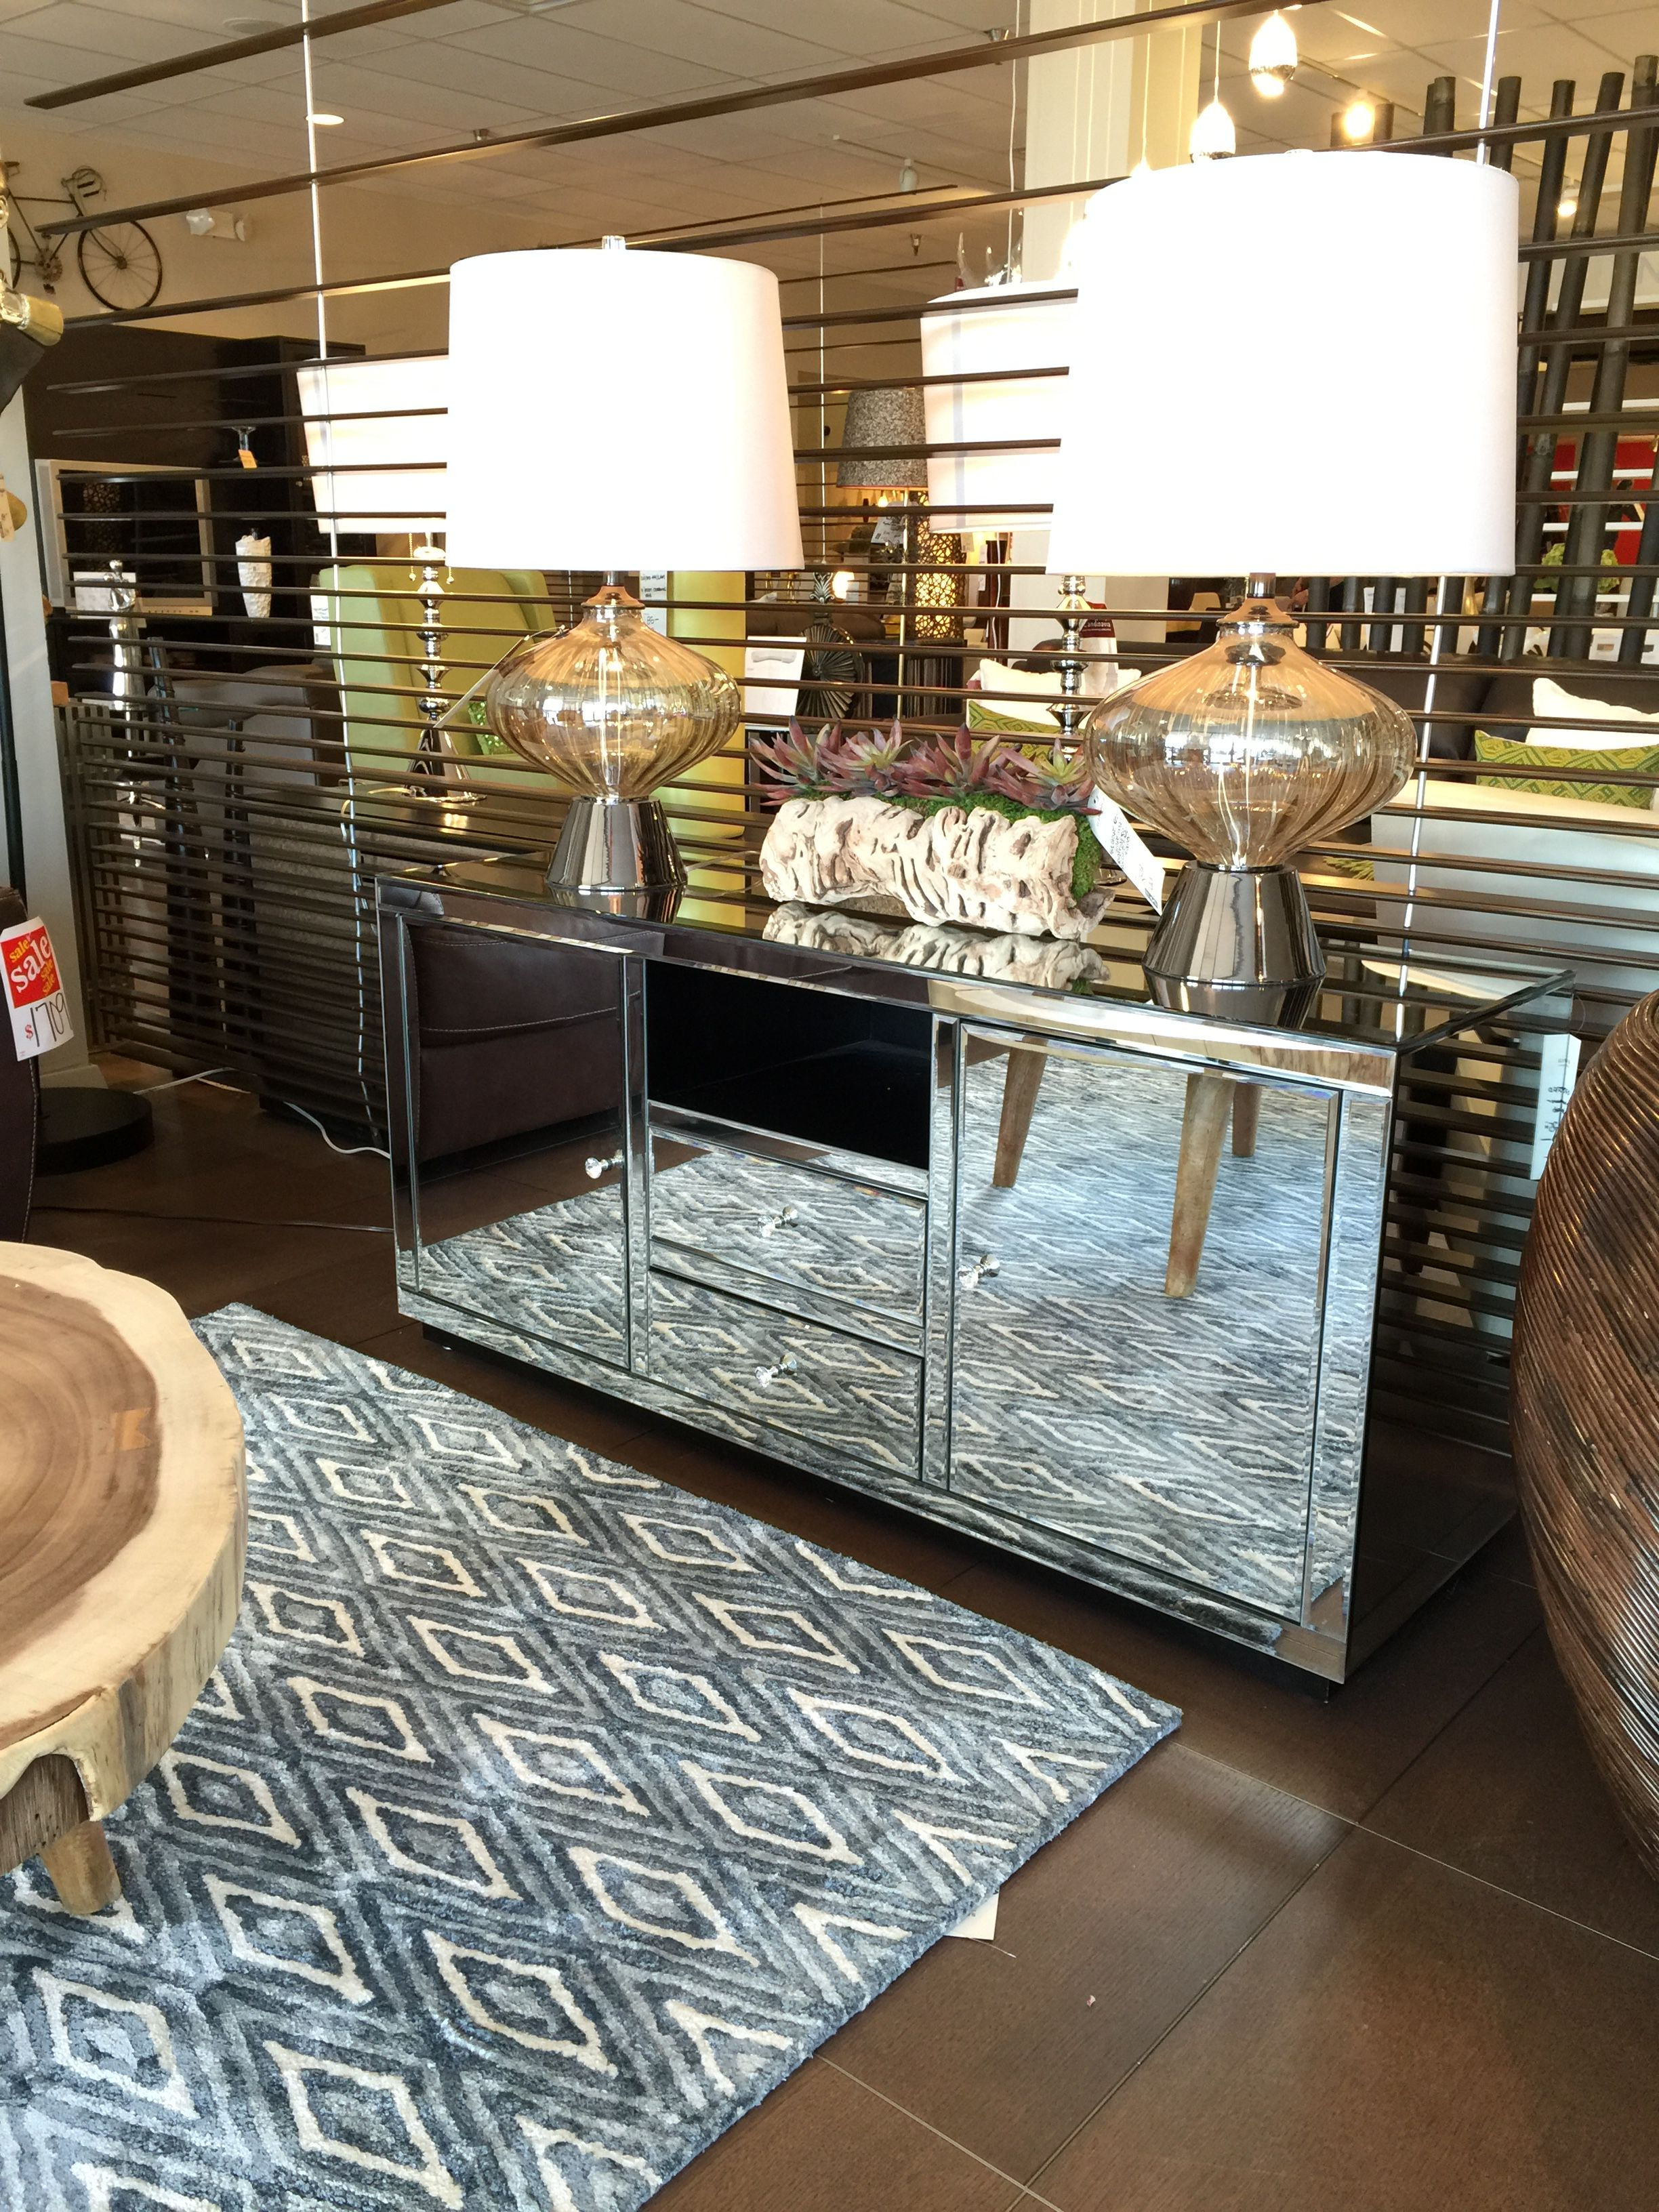 Scandinavia Furniture Inc Metairie New Orleans Louisiana Contemporary Mirrired Tv Cabinet Stylecraft Sf24590